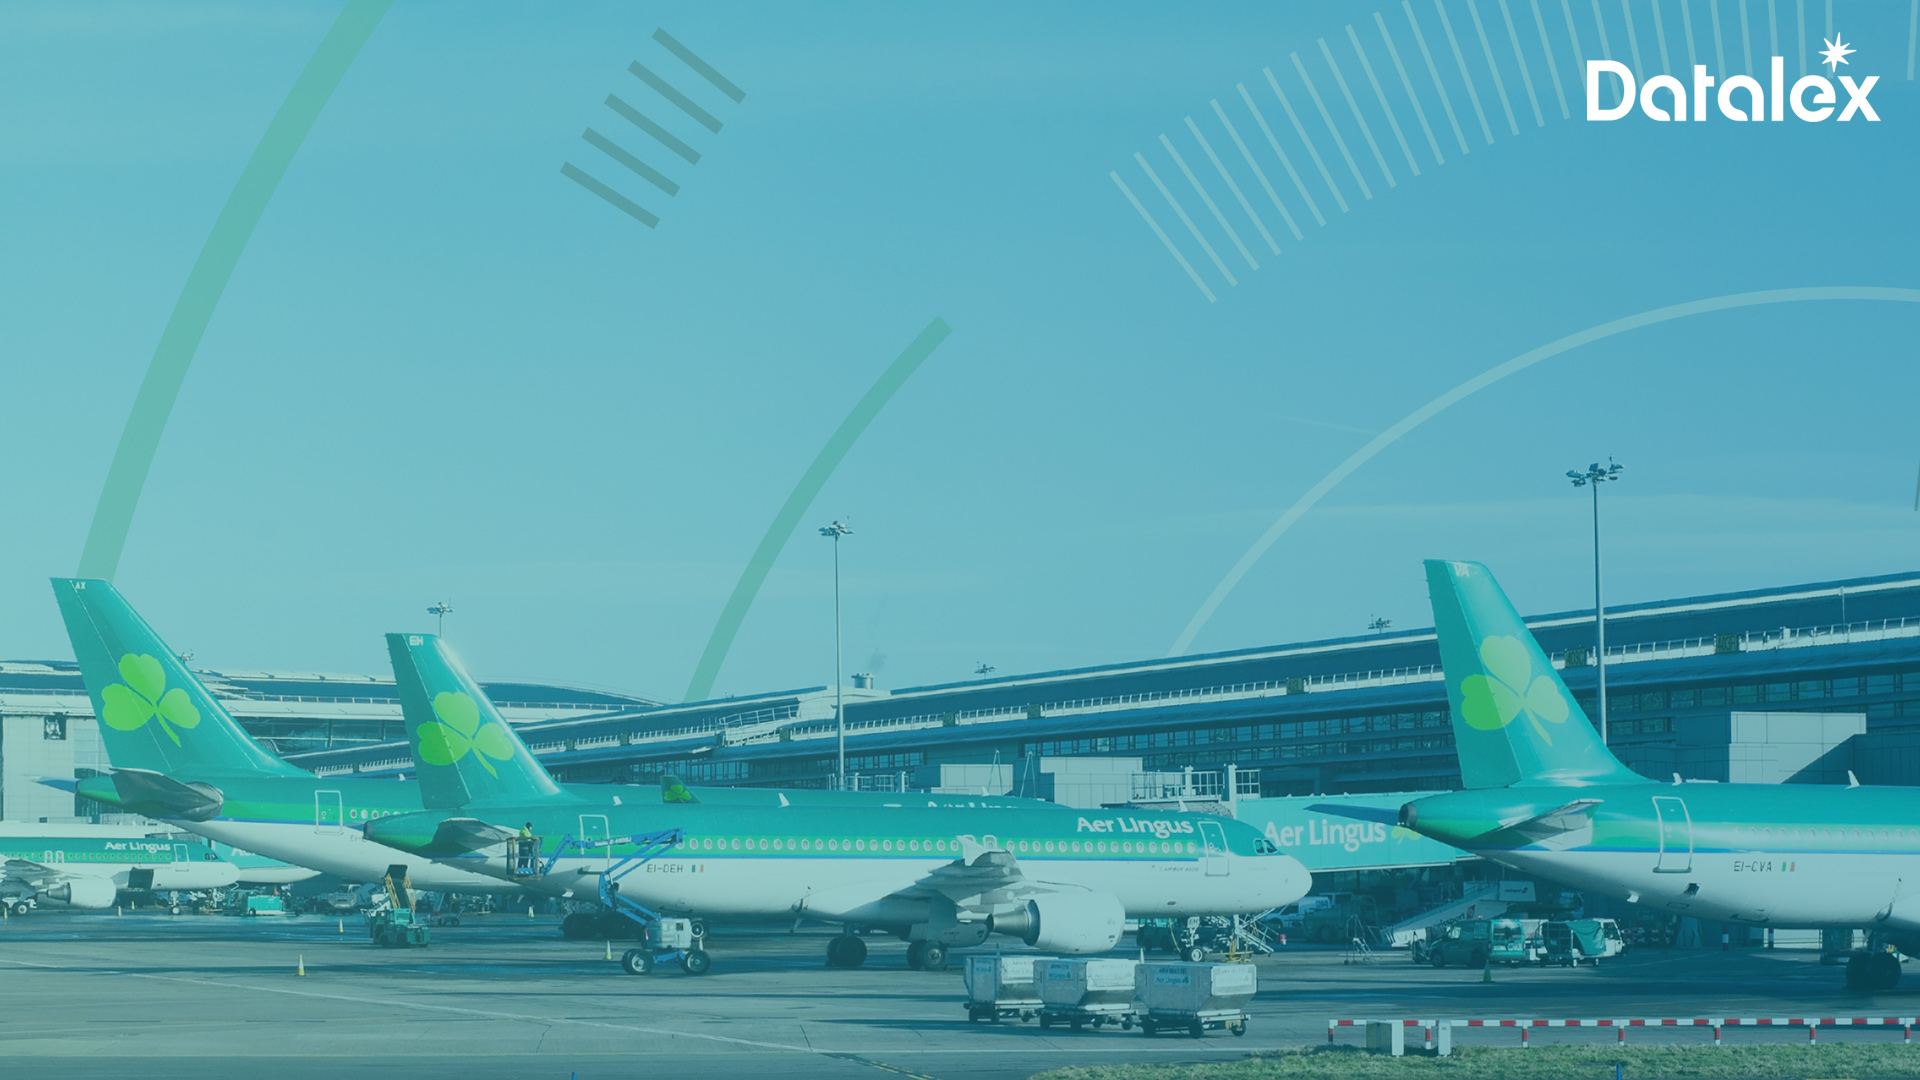 Datalex – The Commerce Platform of Choice for the Aer Lingus Digital Retail Marketplace